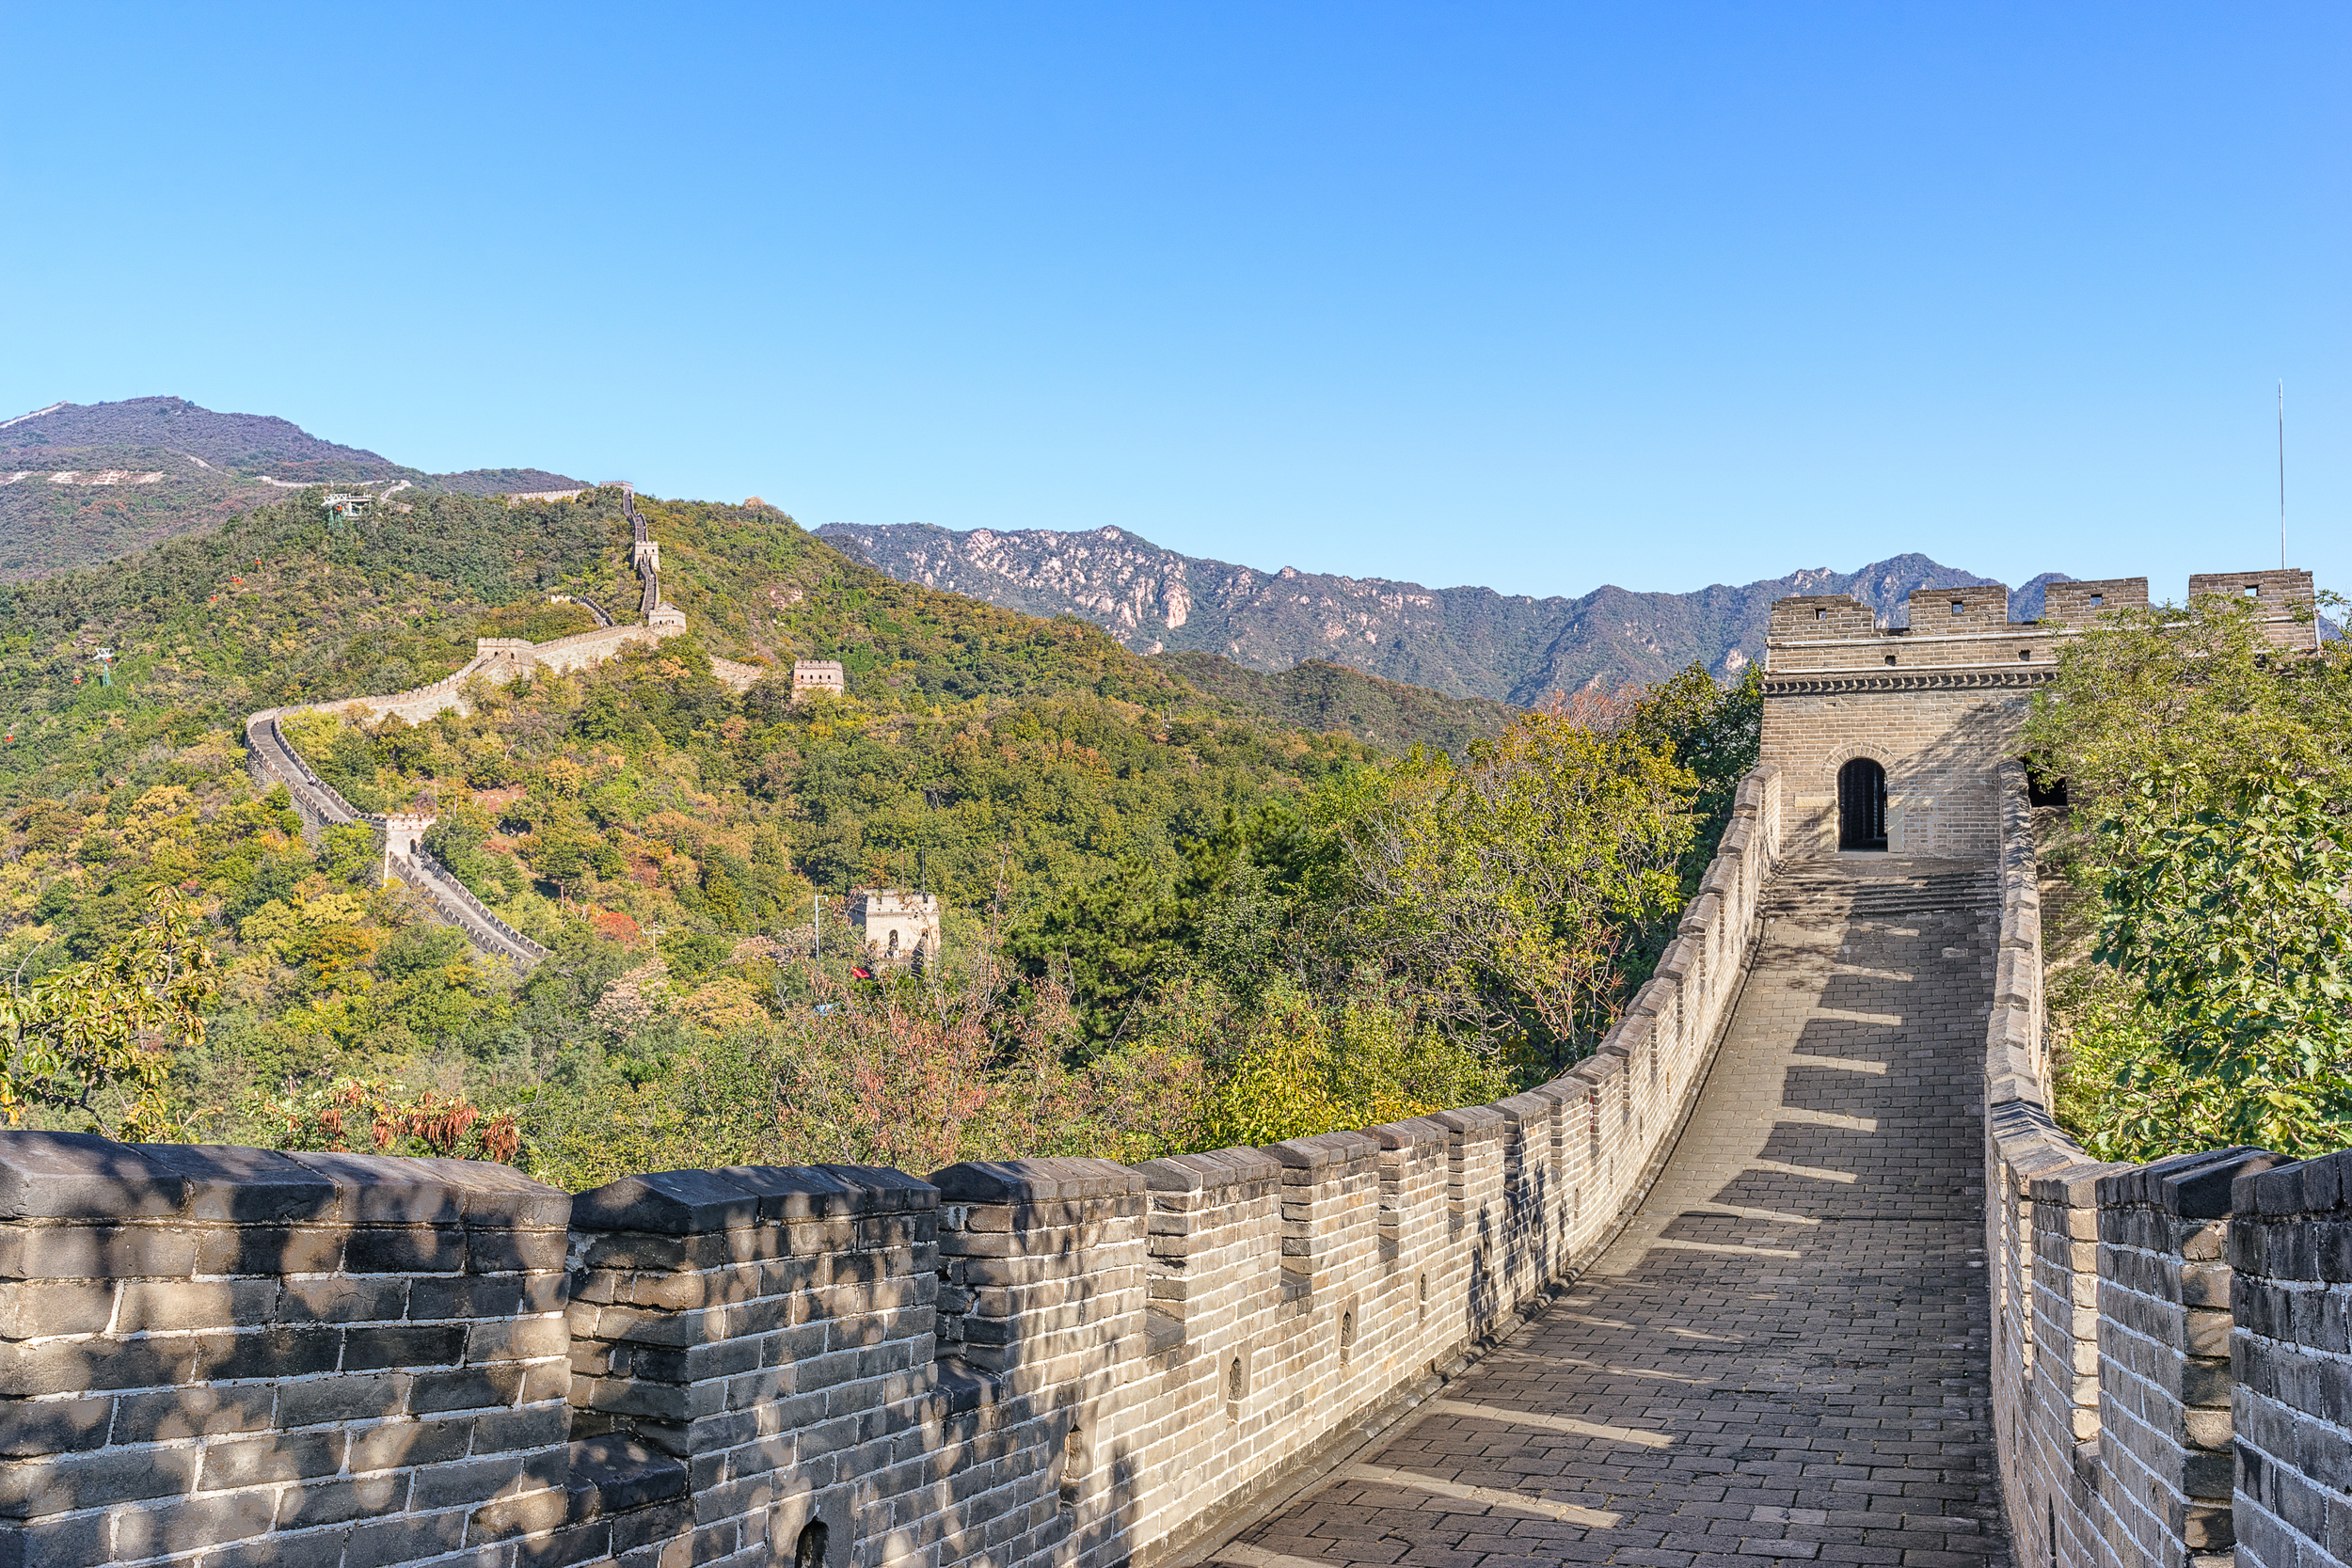 Great Wall of China - ISO 100 | f/9 | 1/30s | 29mm